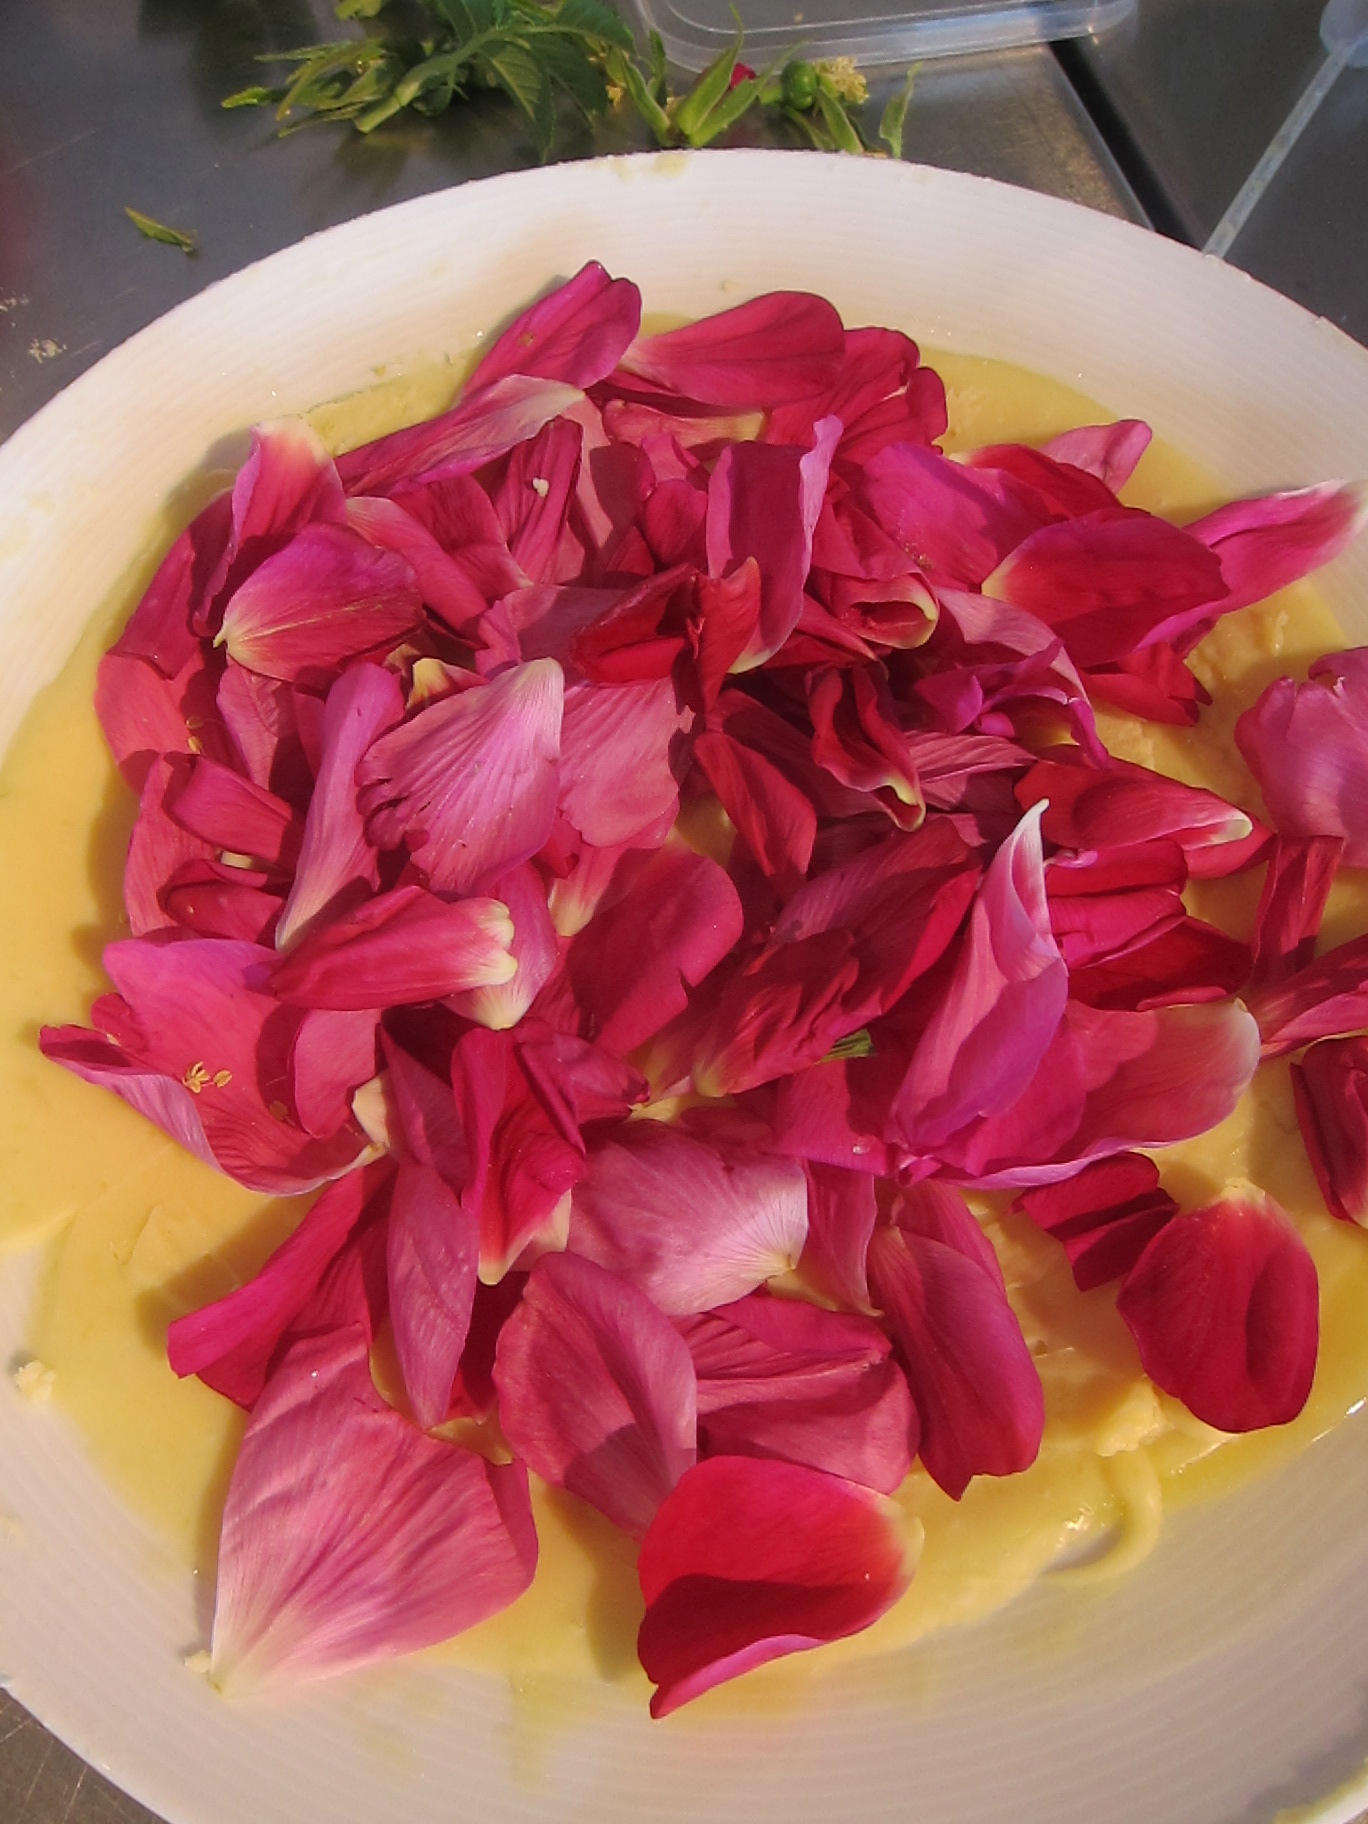 Beach rose enfleurage: Solid, odorless fat used to capture the floral fragrance.